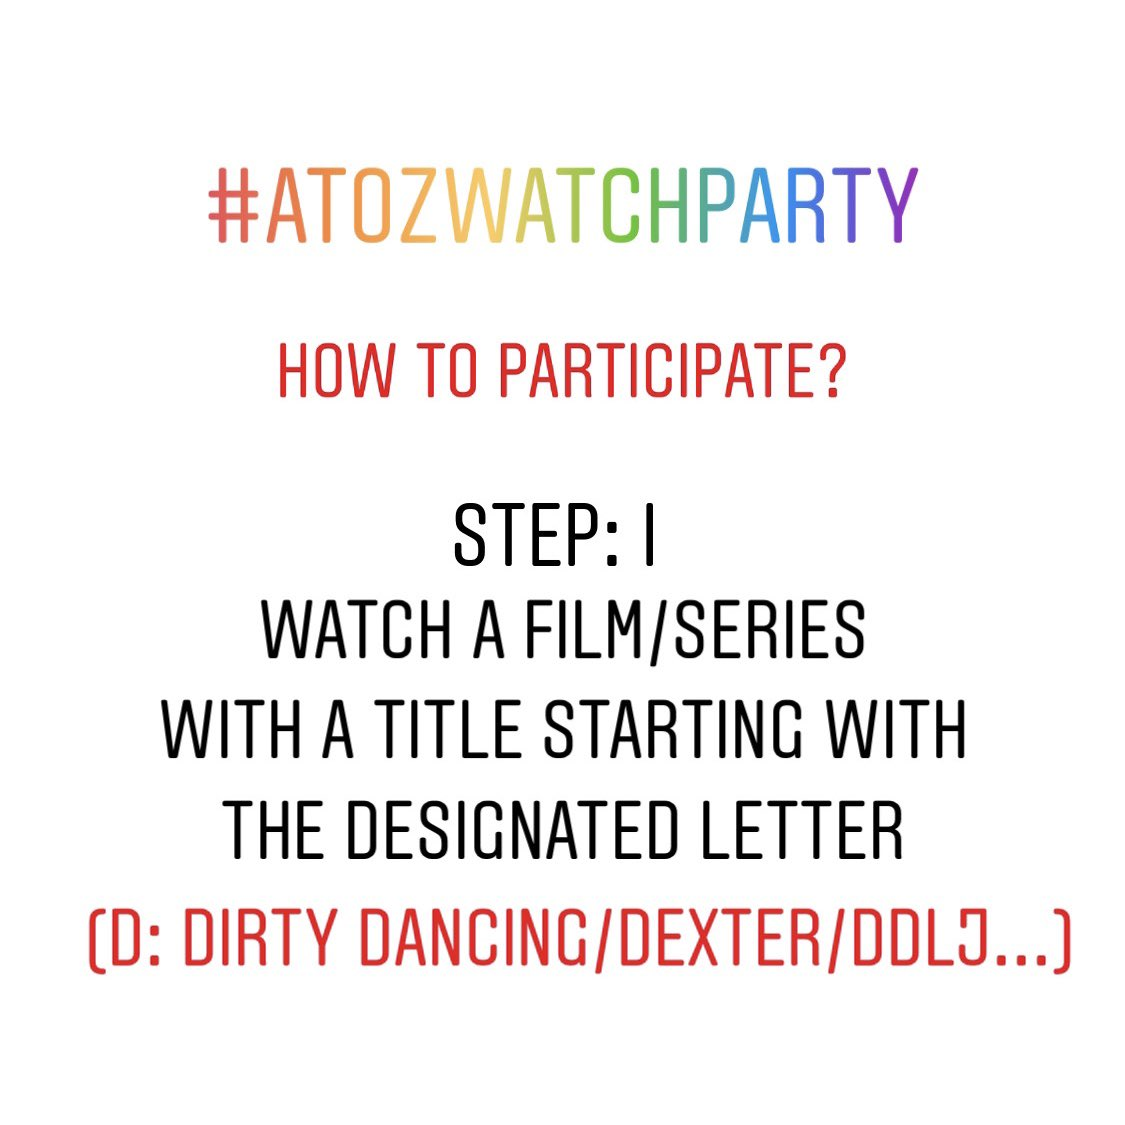 How's #SocialDistancing going for you?  Here's presenting the #AtoZWatchParty to make the most of this lockdown watching movies & series we've been waiting to watch!  Who's joining? Say Aye 🙋🏻‍♀️